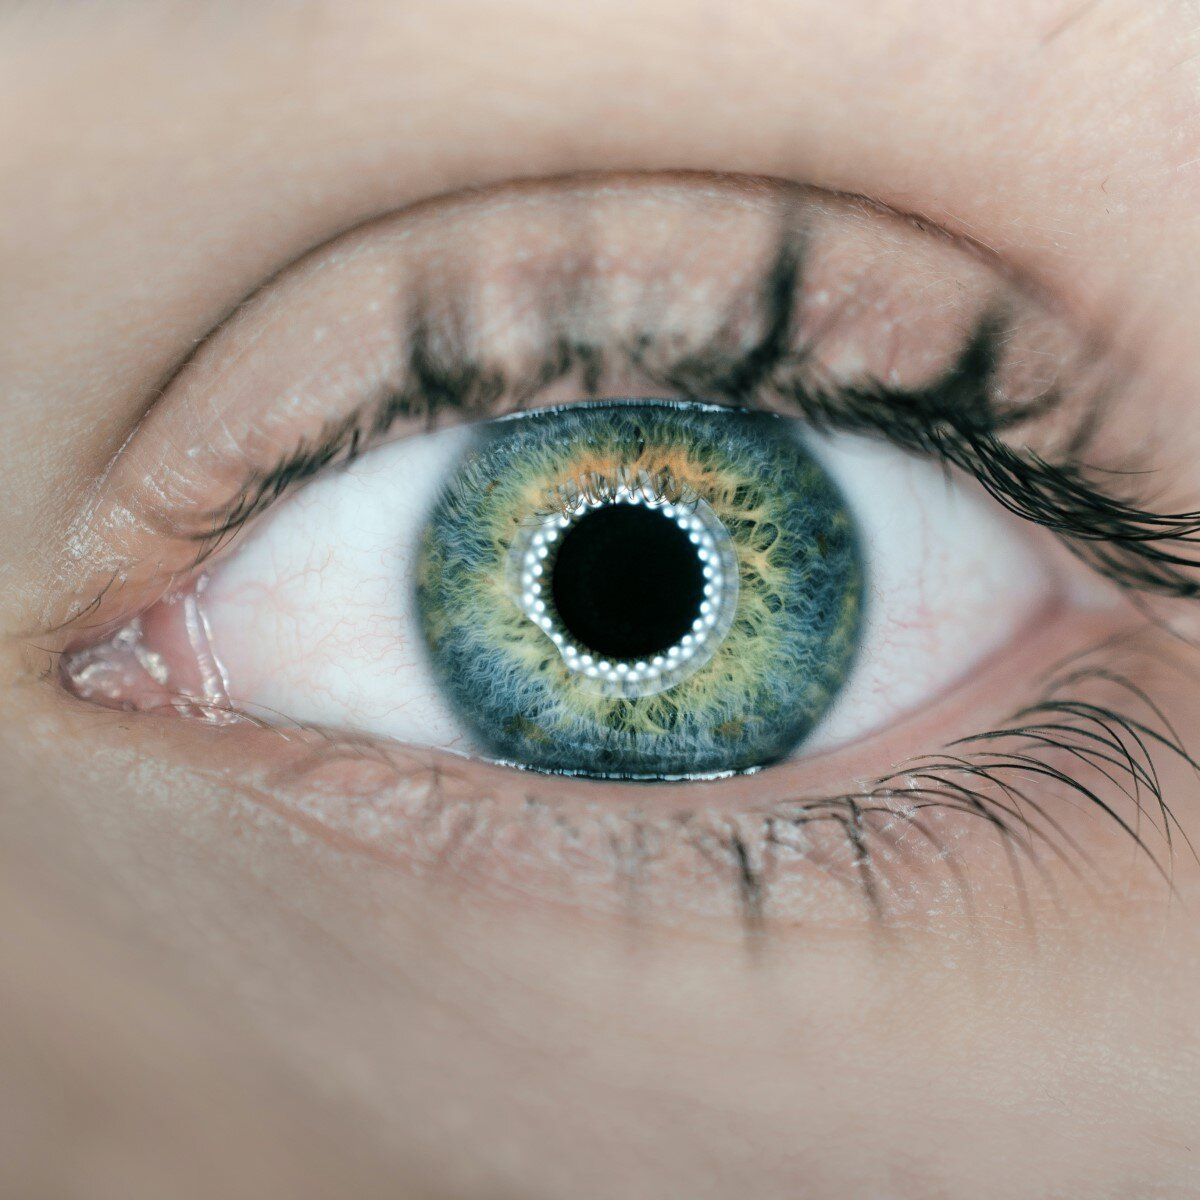 S3.14 The eyes have it: From genetics to gene therapy